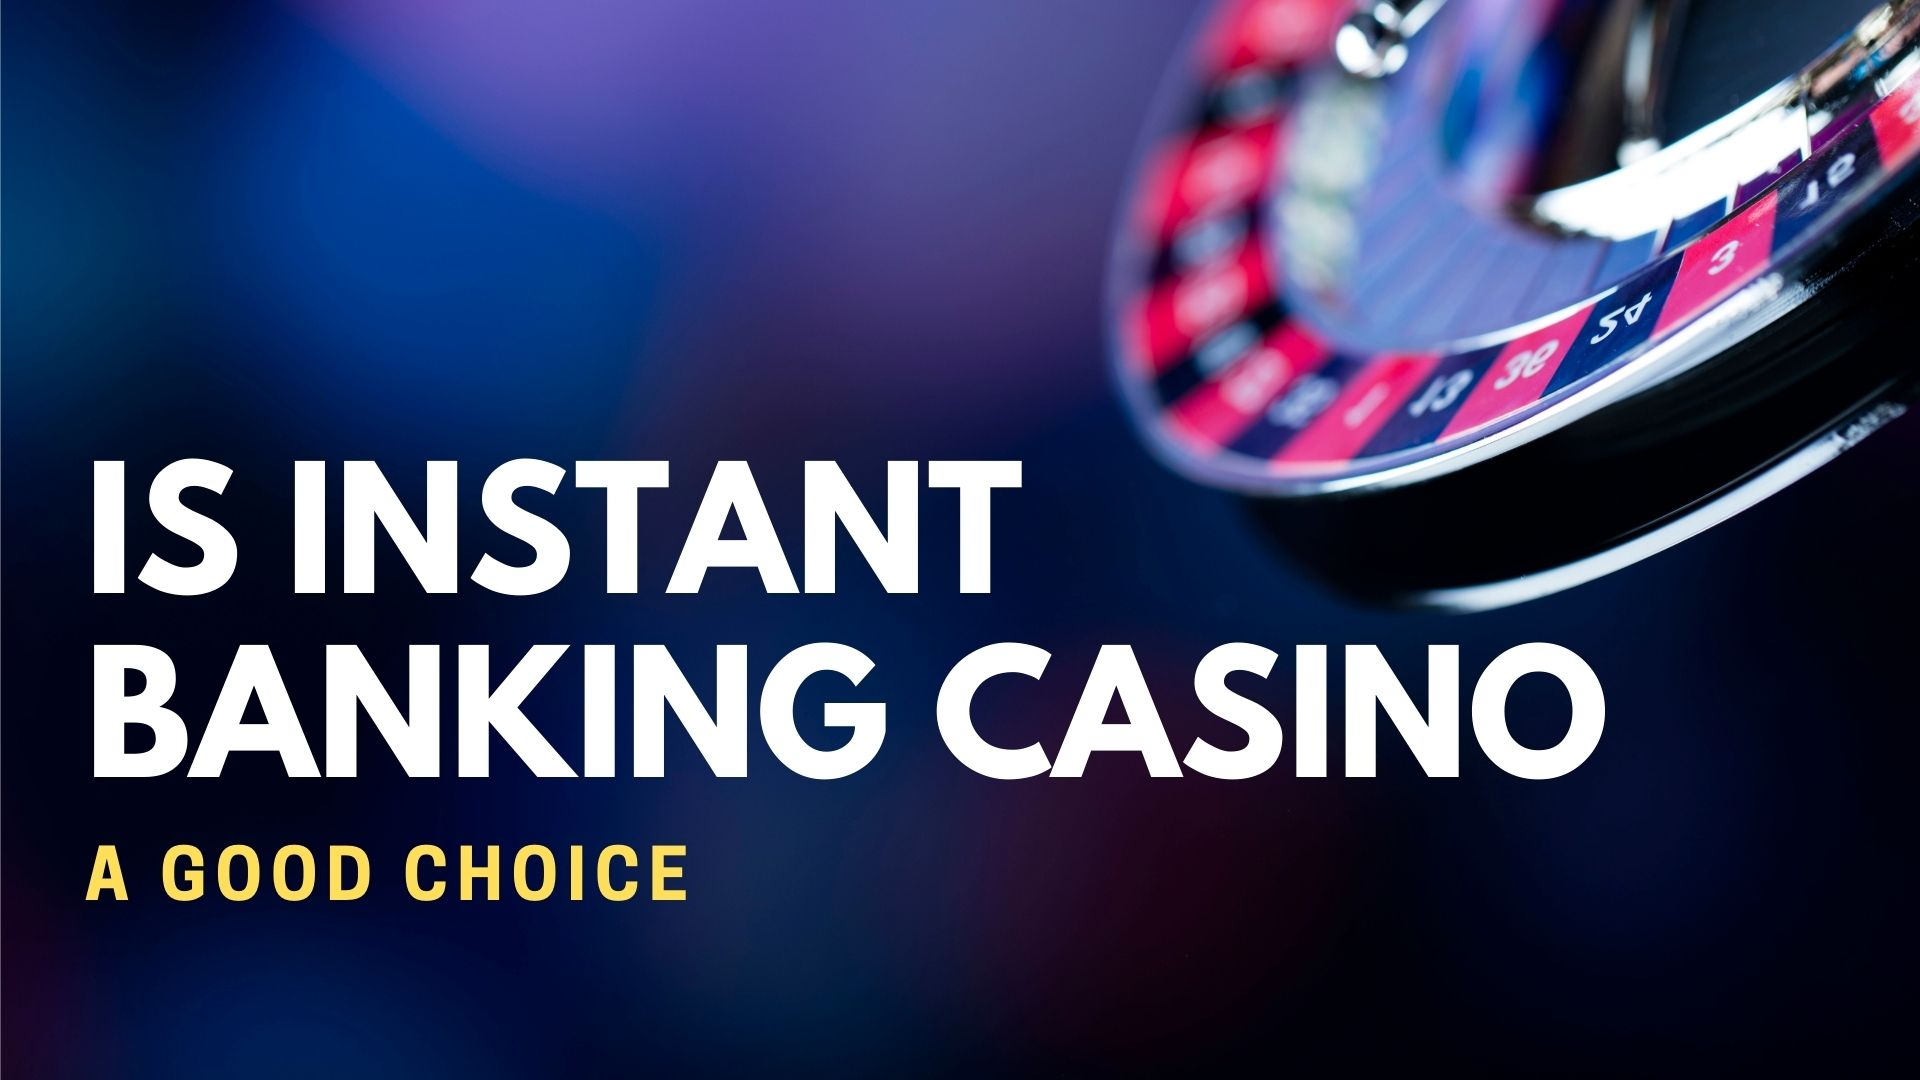 Is Instant Banking Casino A Good Choice